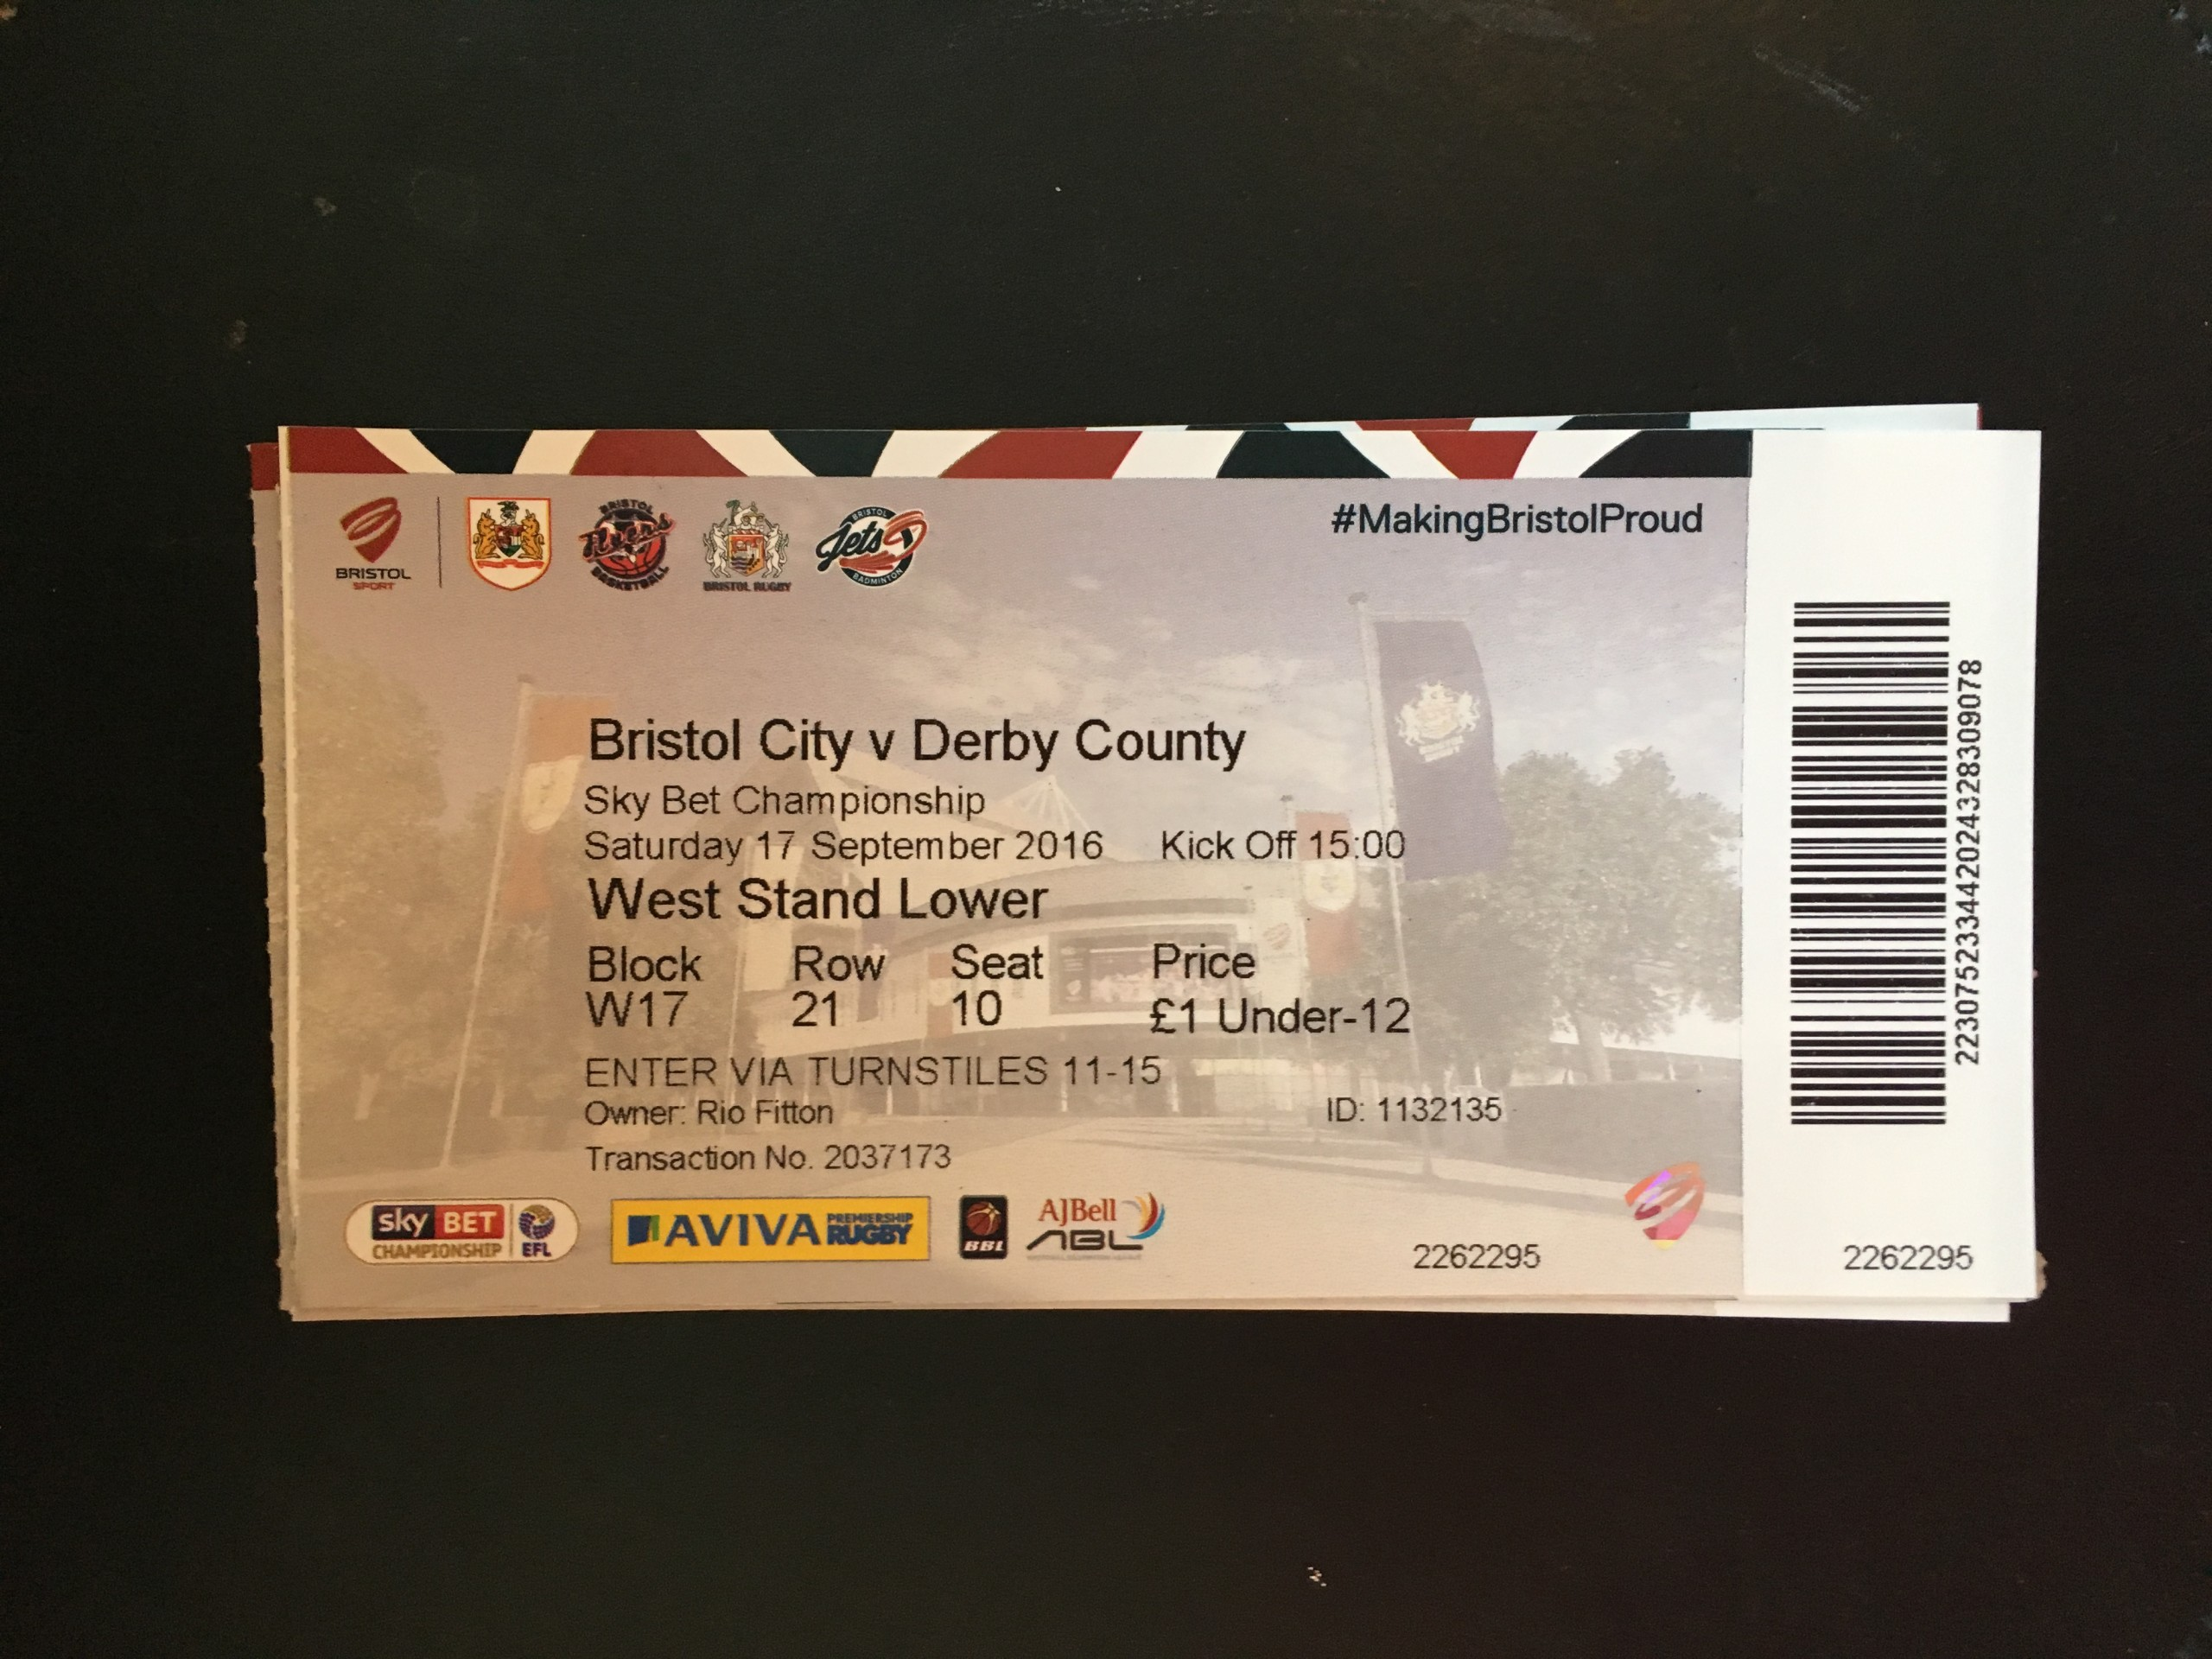 Bristol City v Derby County 17-09-2016 Ticket